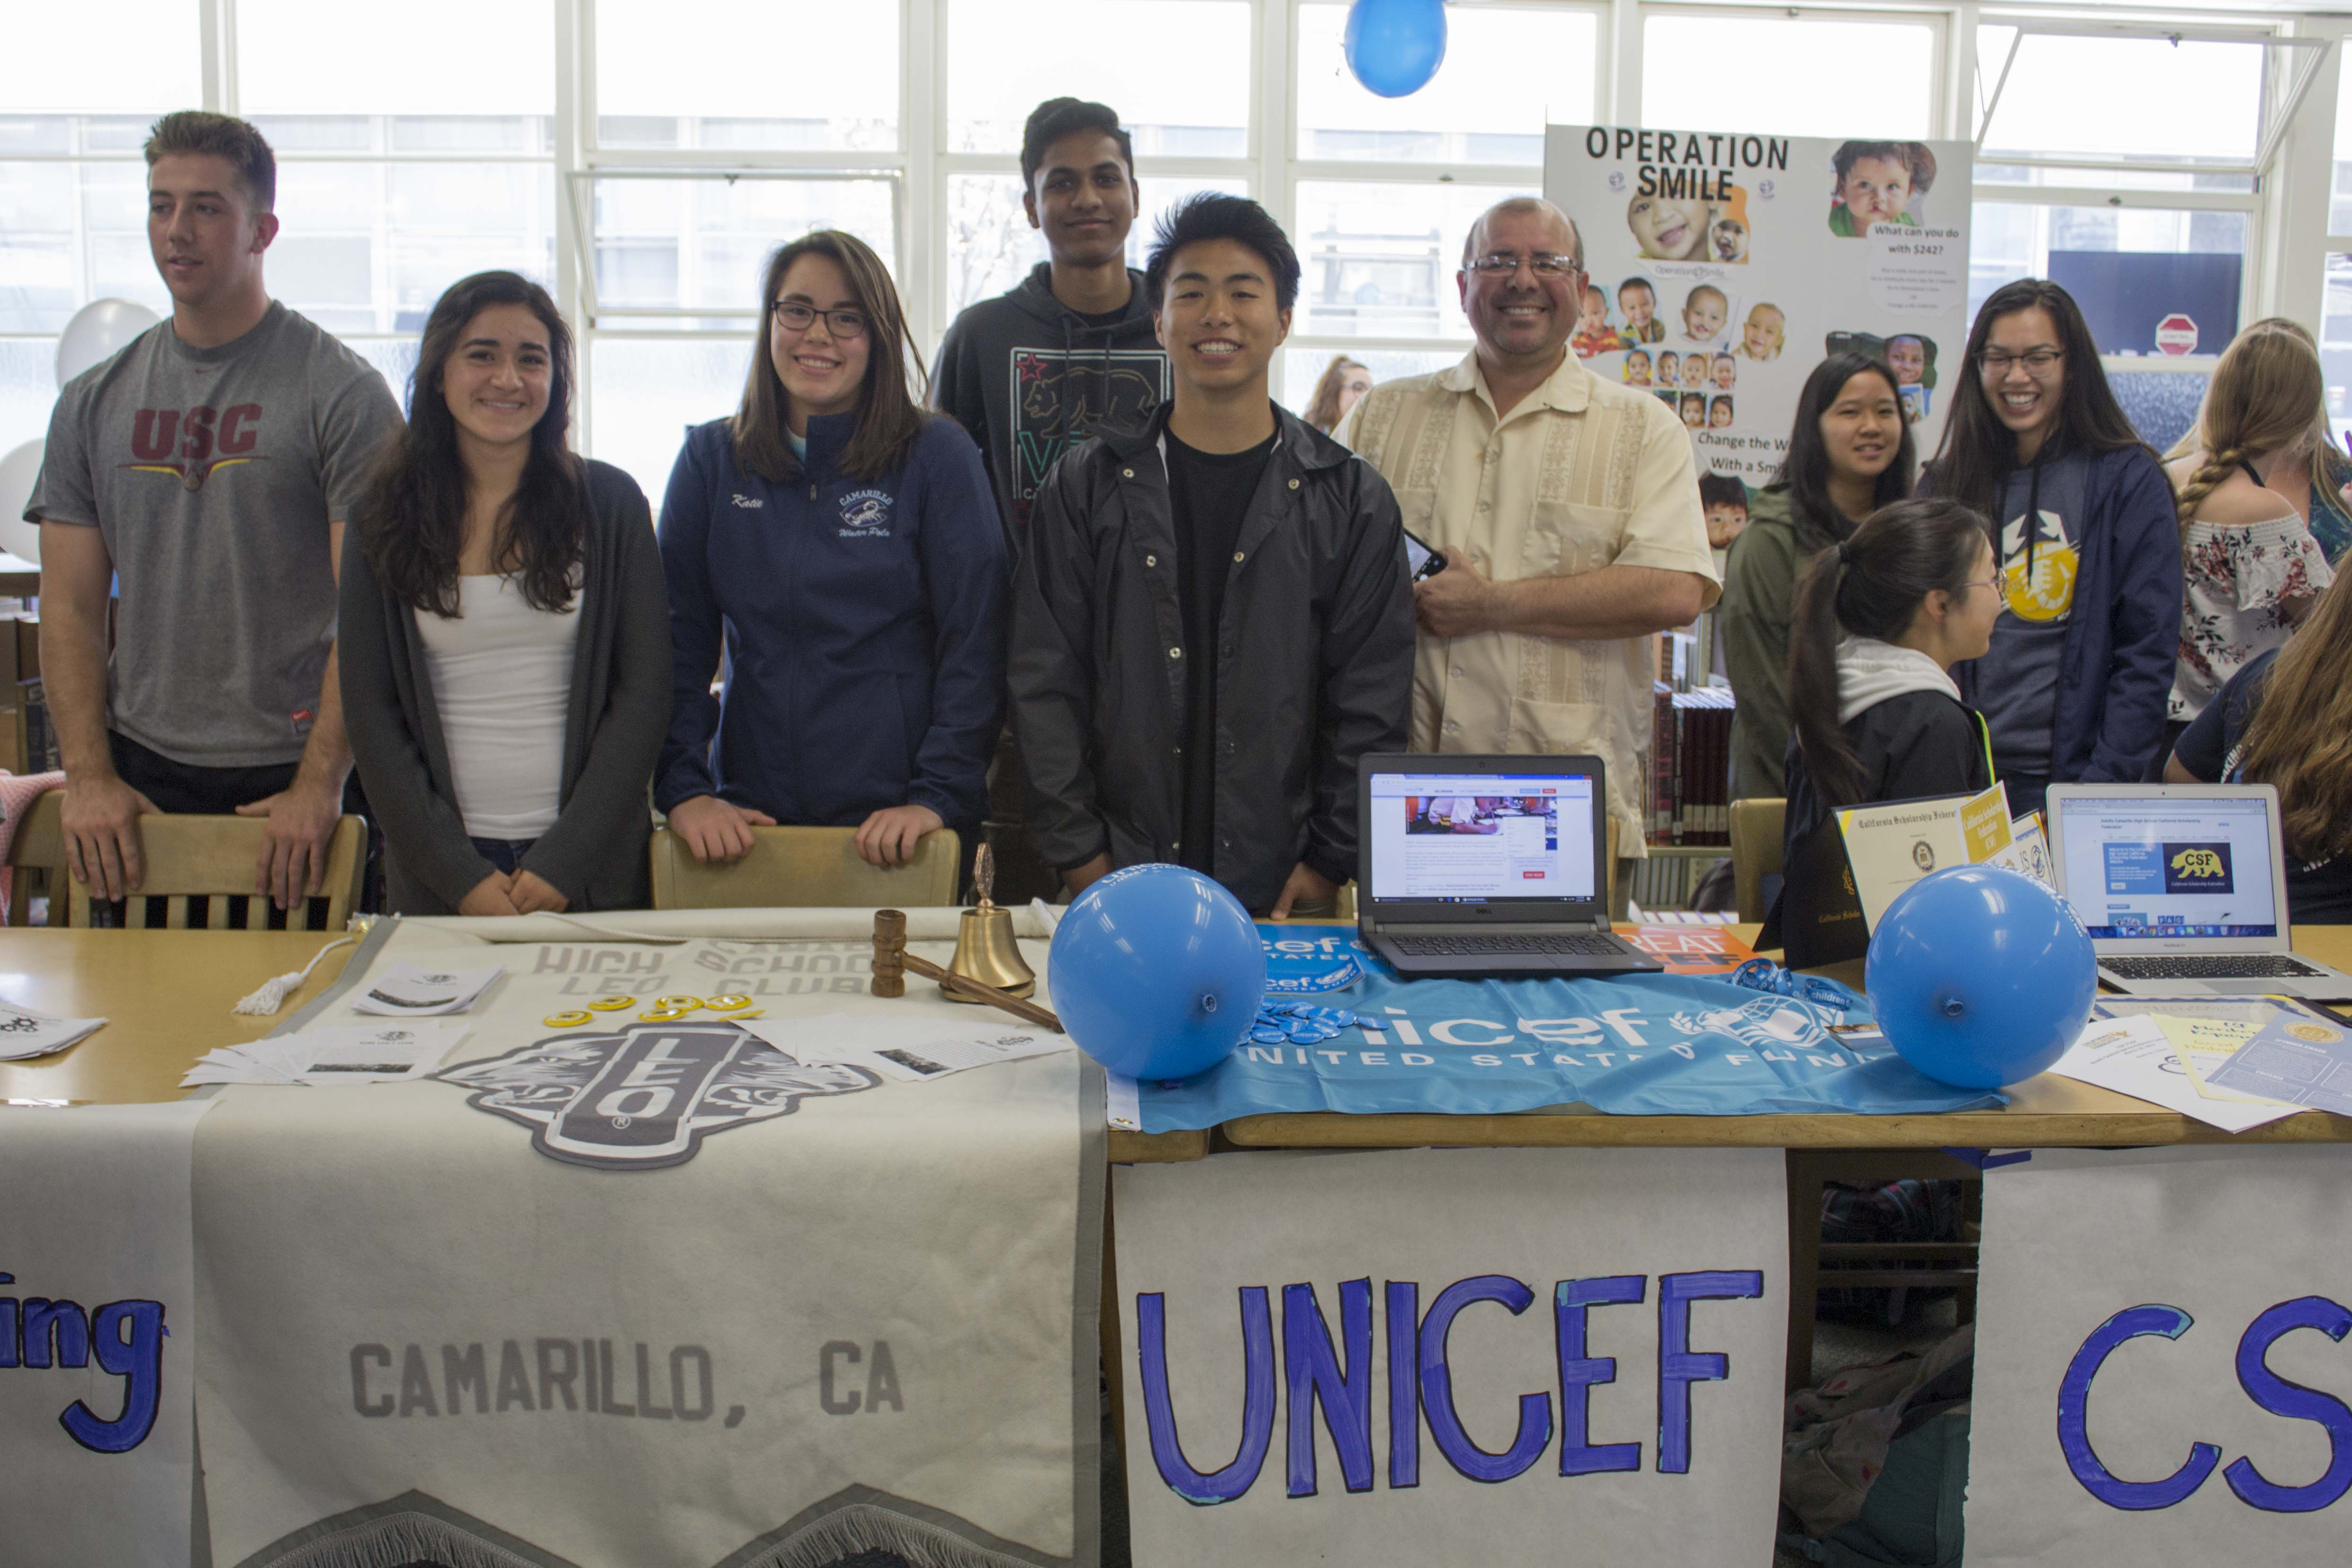 Andrea Banales and Katie Rodriguez, seniors, representing Leo's Club and Aditya Sunkara, Ben Abutin, juniors, and Mr. Jesus Duran representing UNICEF.